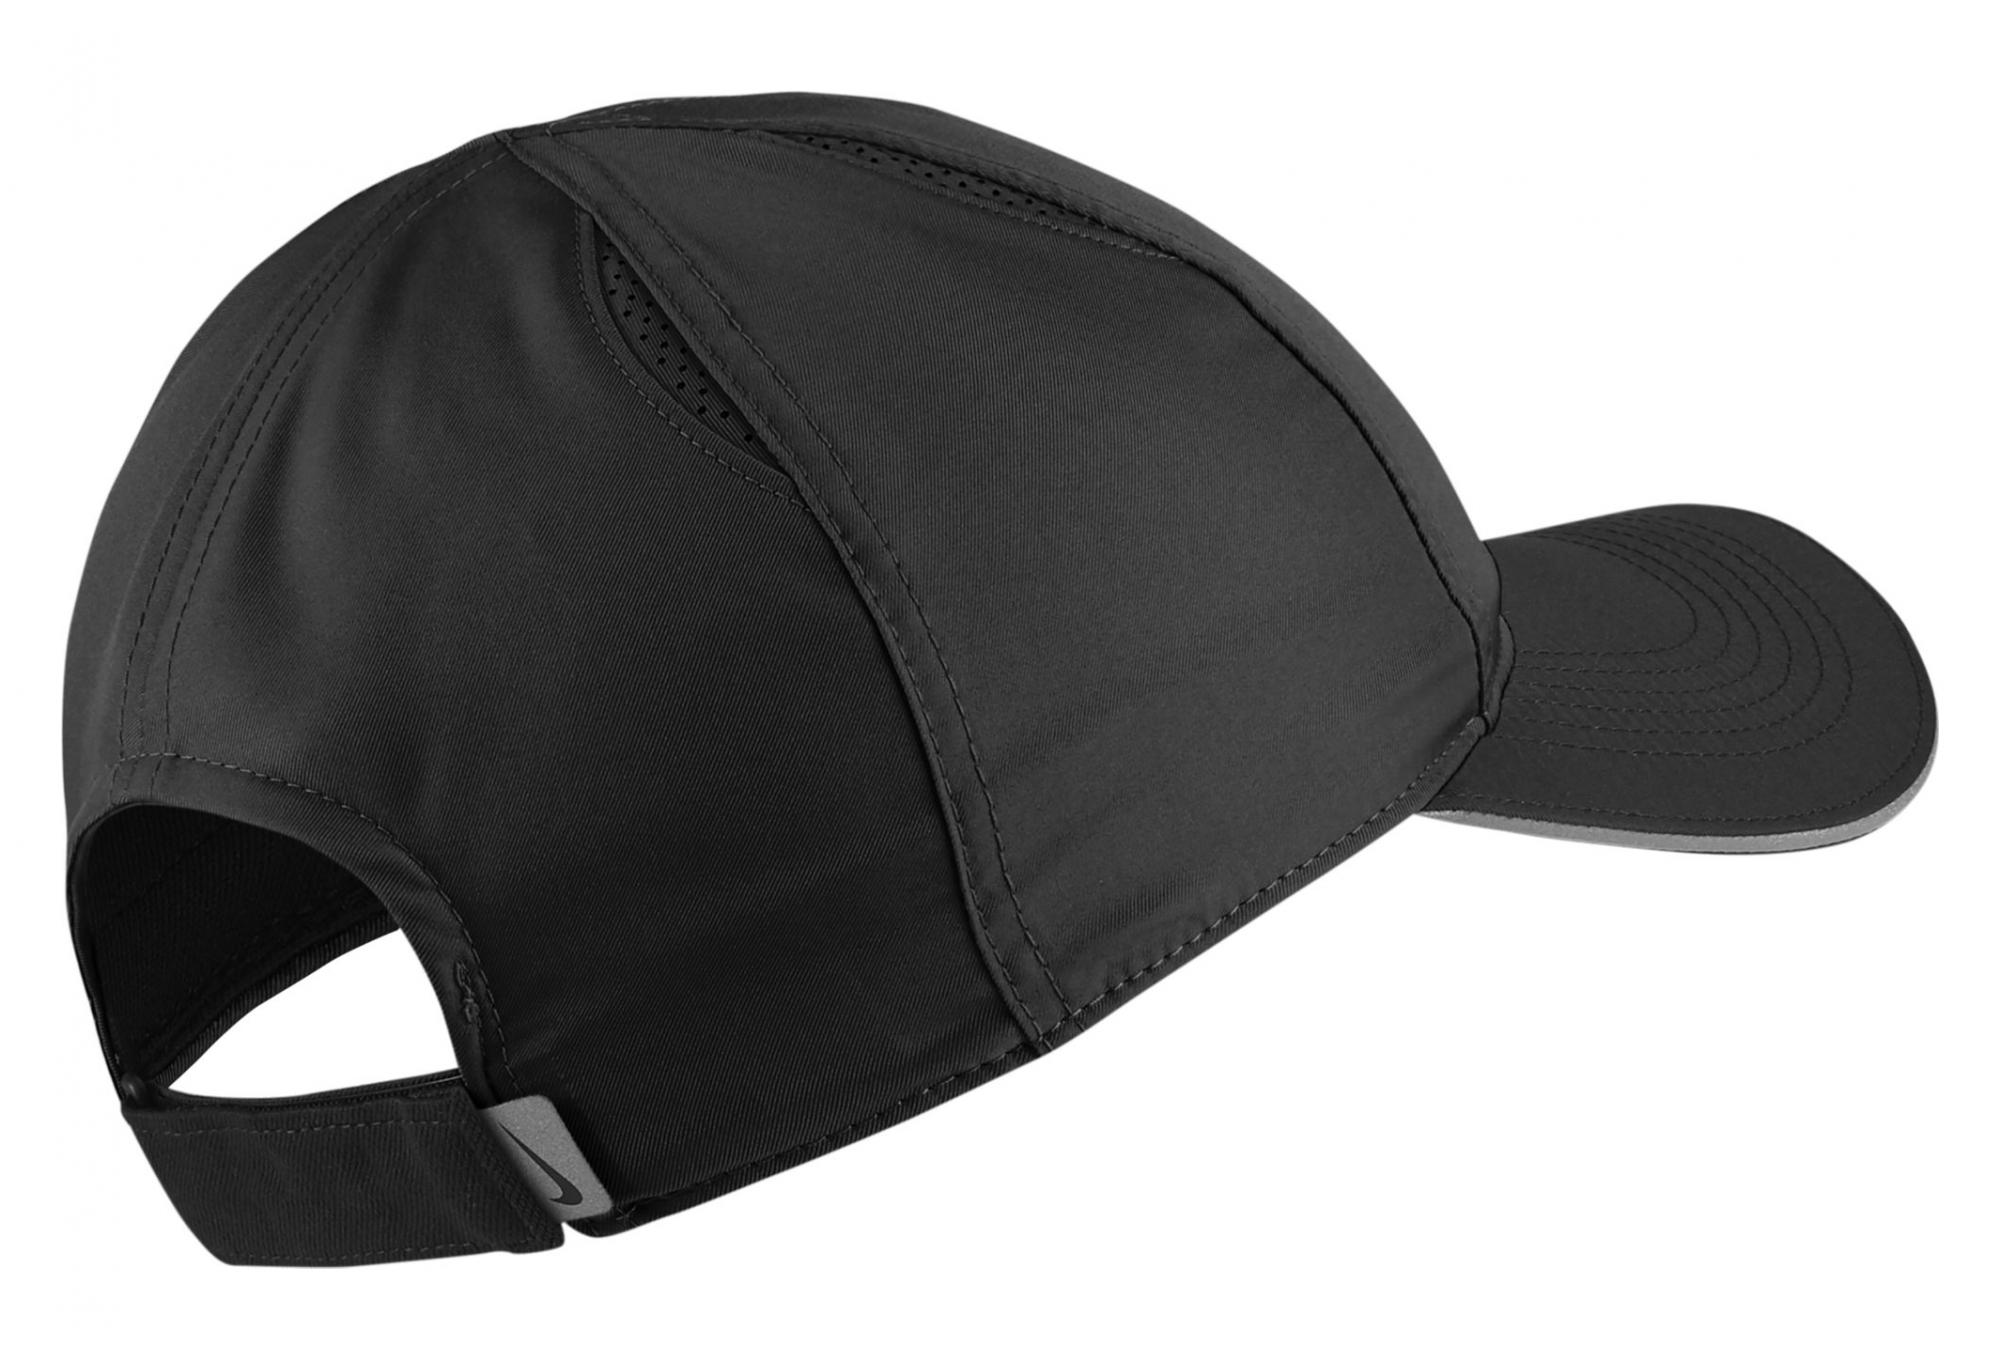 NIKE Featherlight Cap Black Unisex  4f9e7793566